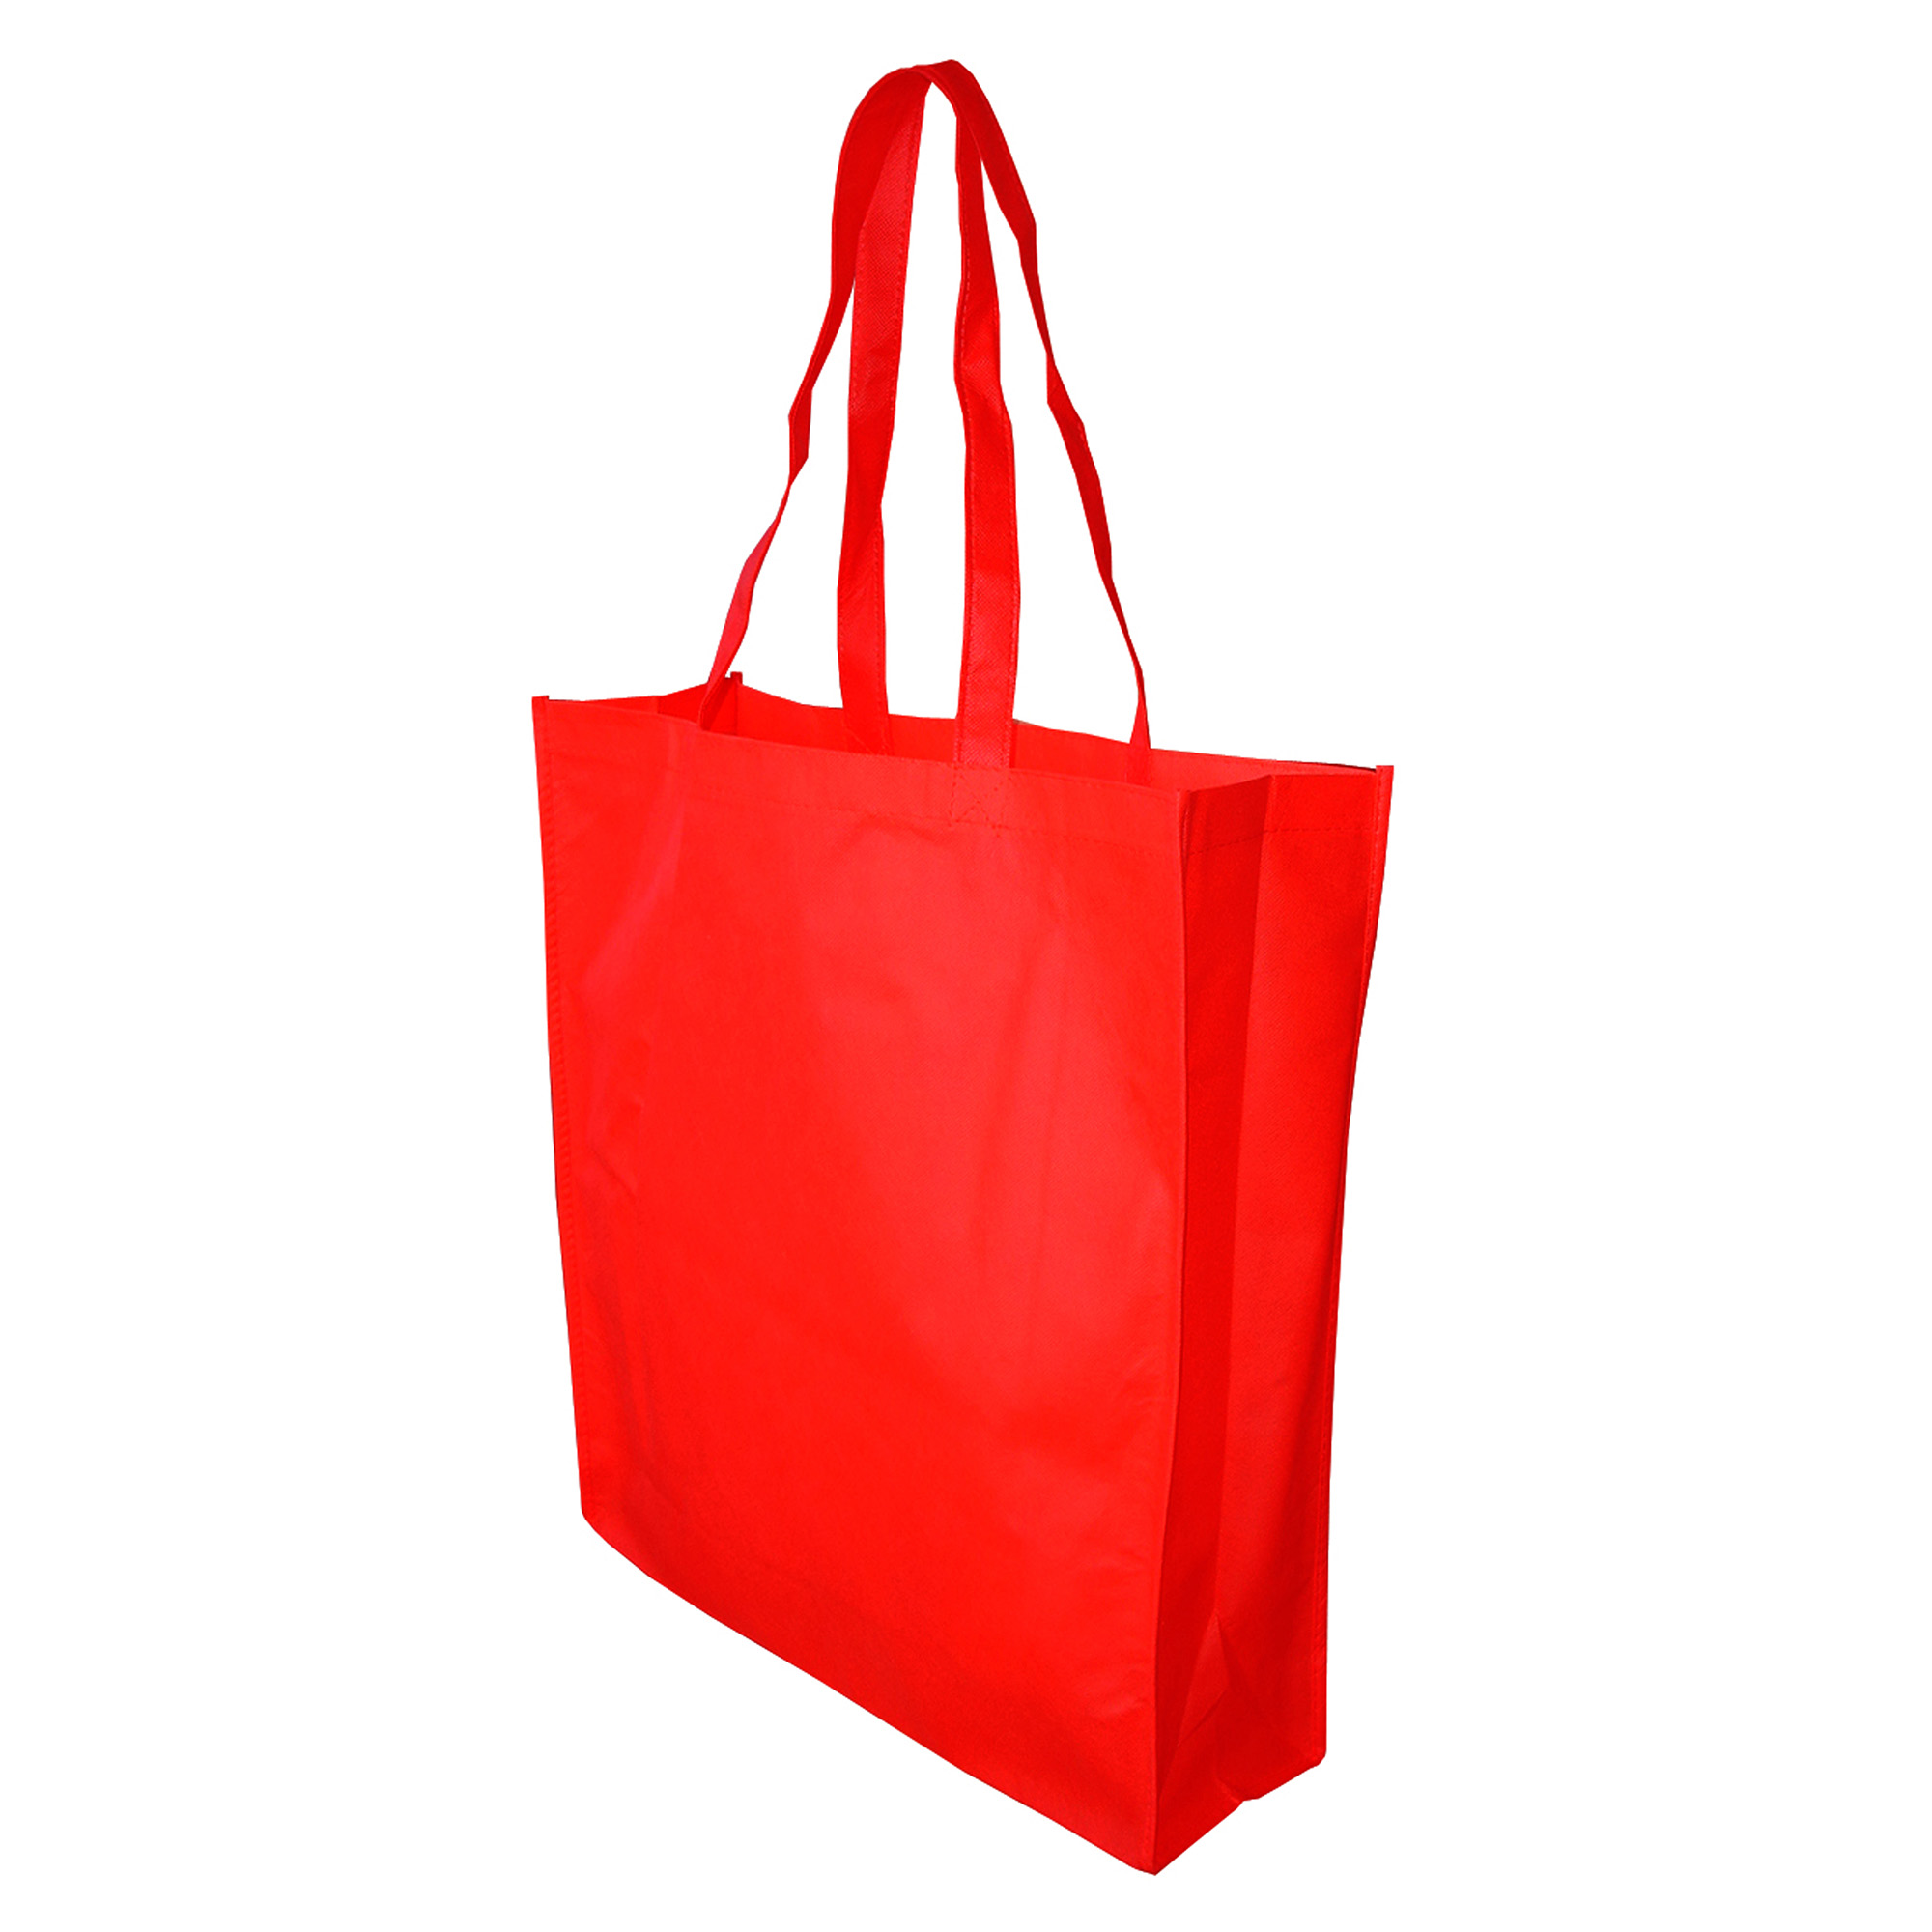 NON WOVEN BAG EXTRA LARGE WITH GUSSET - 1 Colour Print, From $1.23